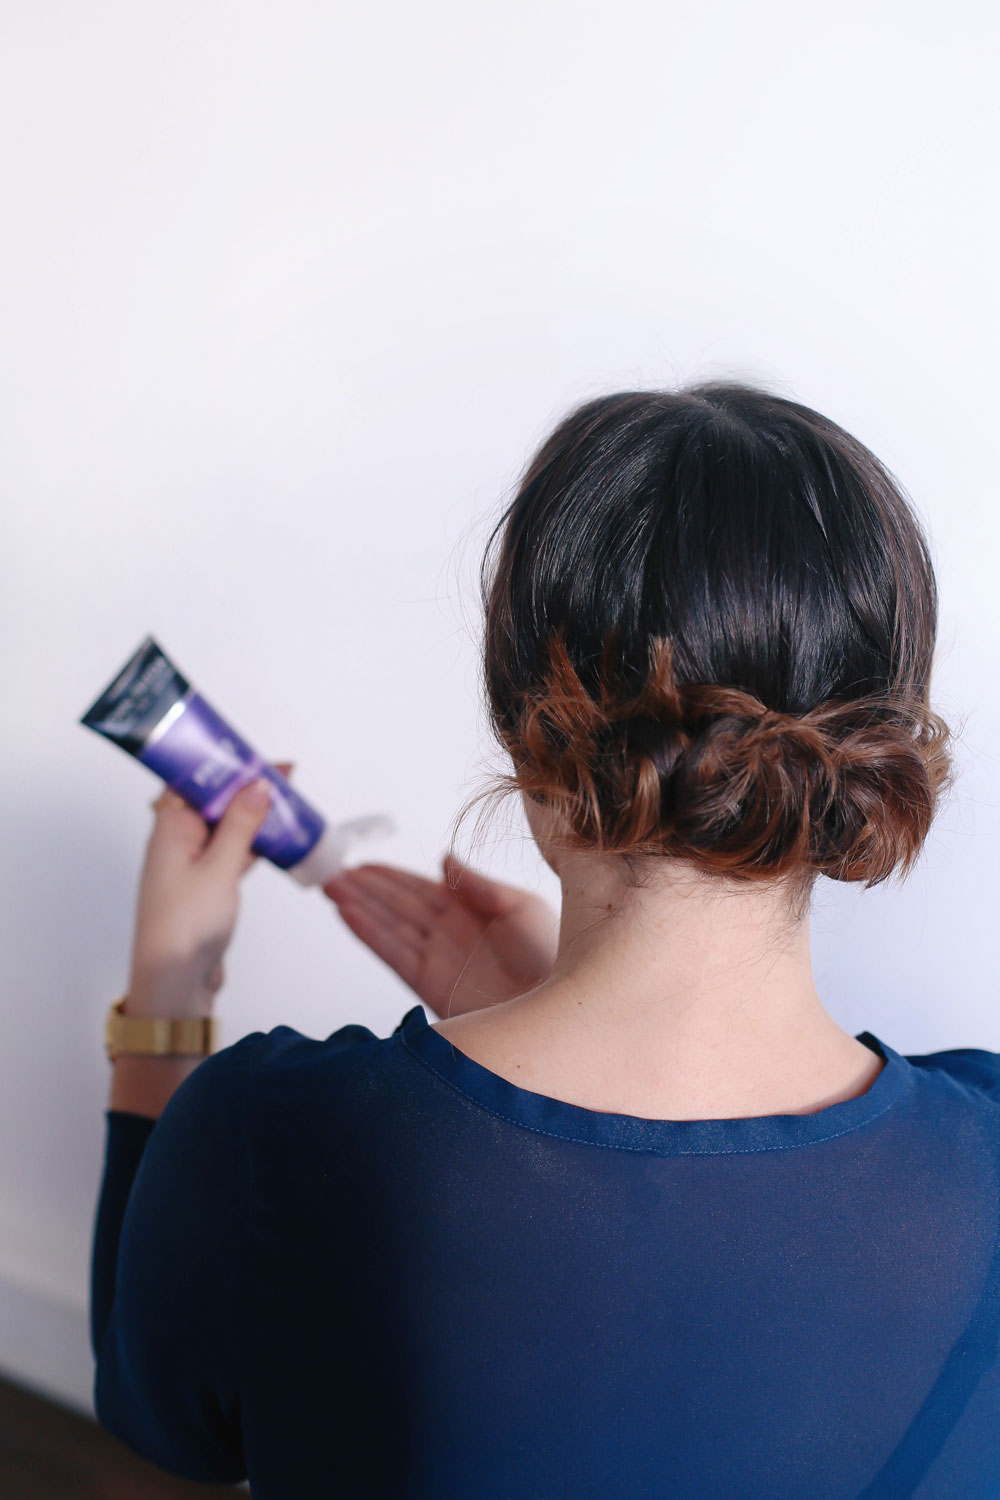 Second day hair styles using John Frieda products, including Luxurious Volume line, Brilliant Brunette Visibly Deeper Collection, Colour Deepening Treatment styled by To Vogue or Bust